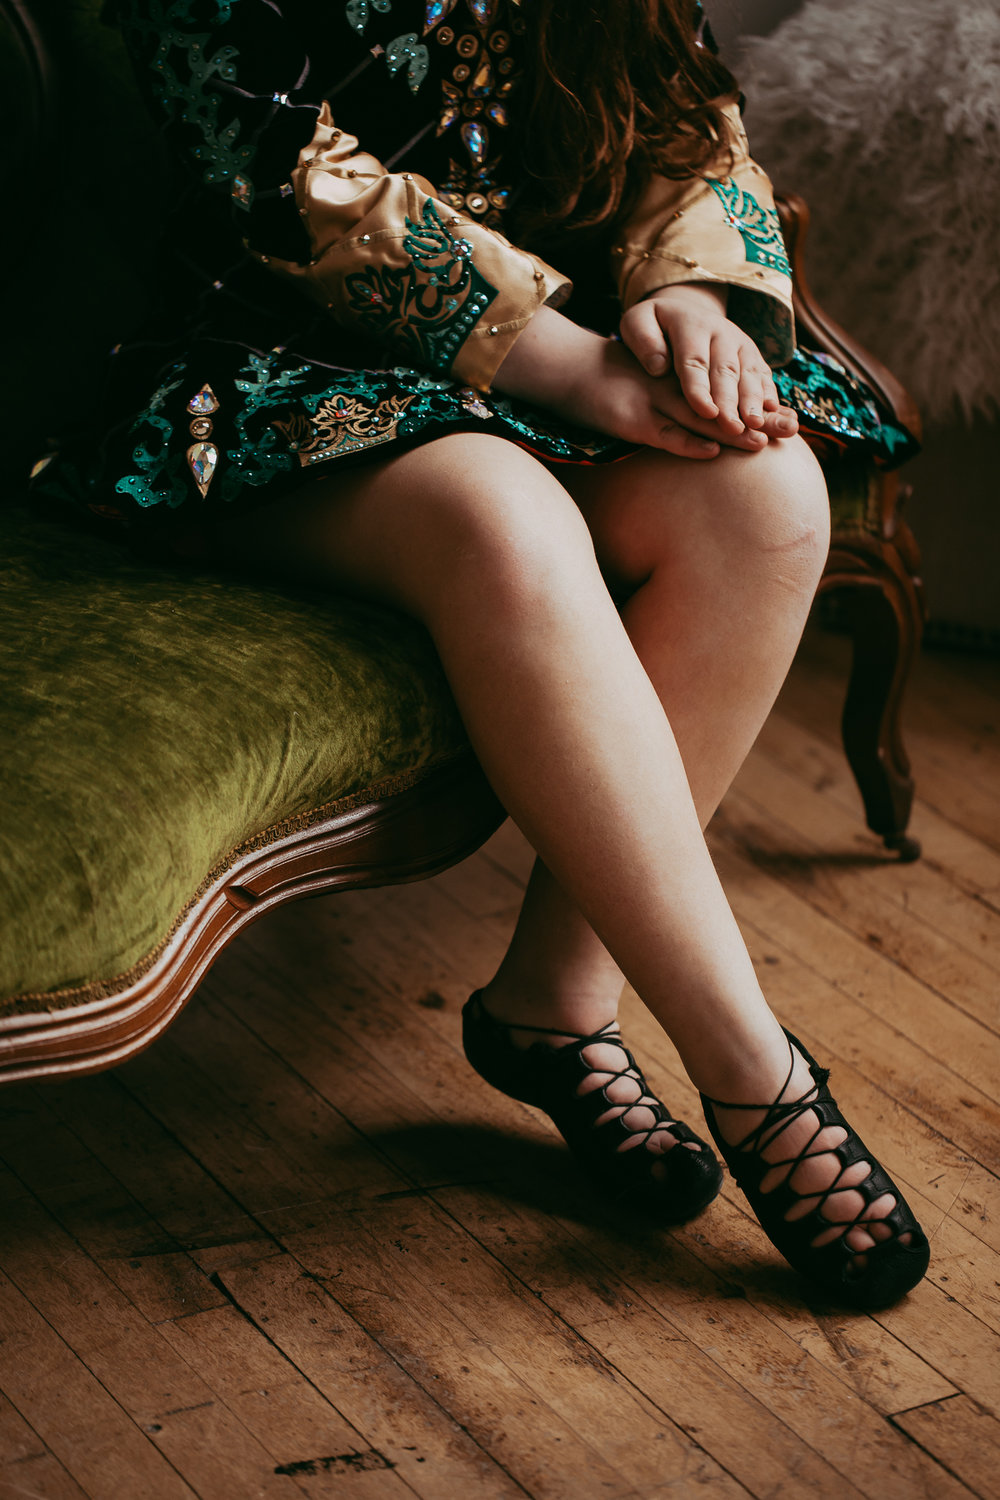 legs of Irish Dancer tying shoes - Twin Cities Artistic Family Photos